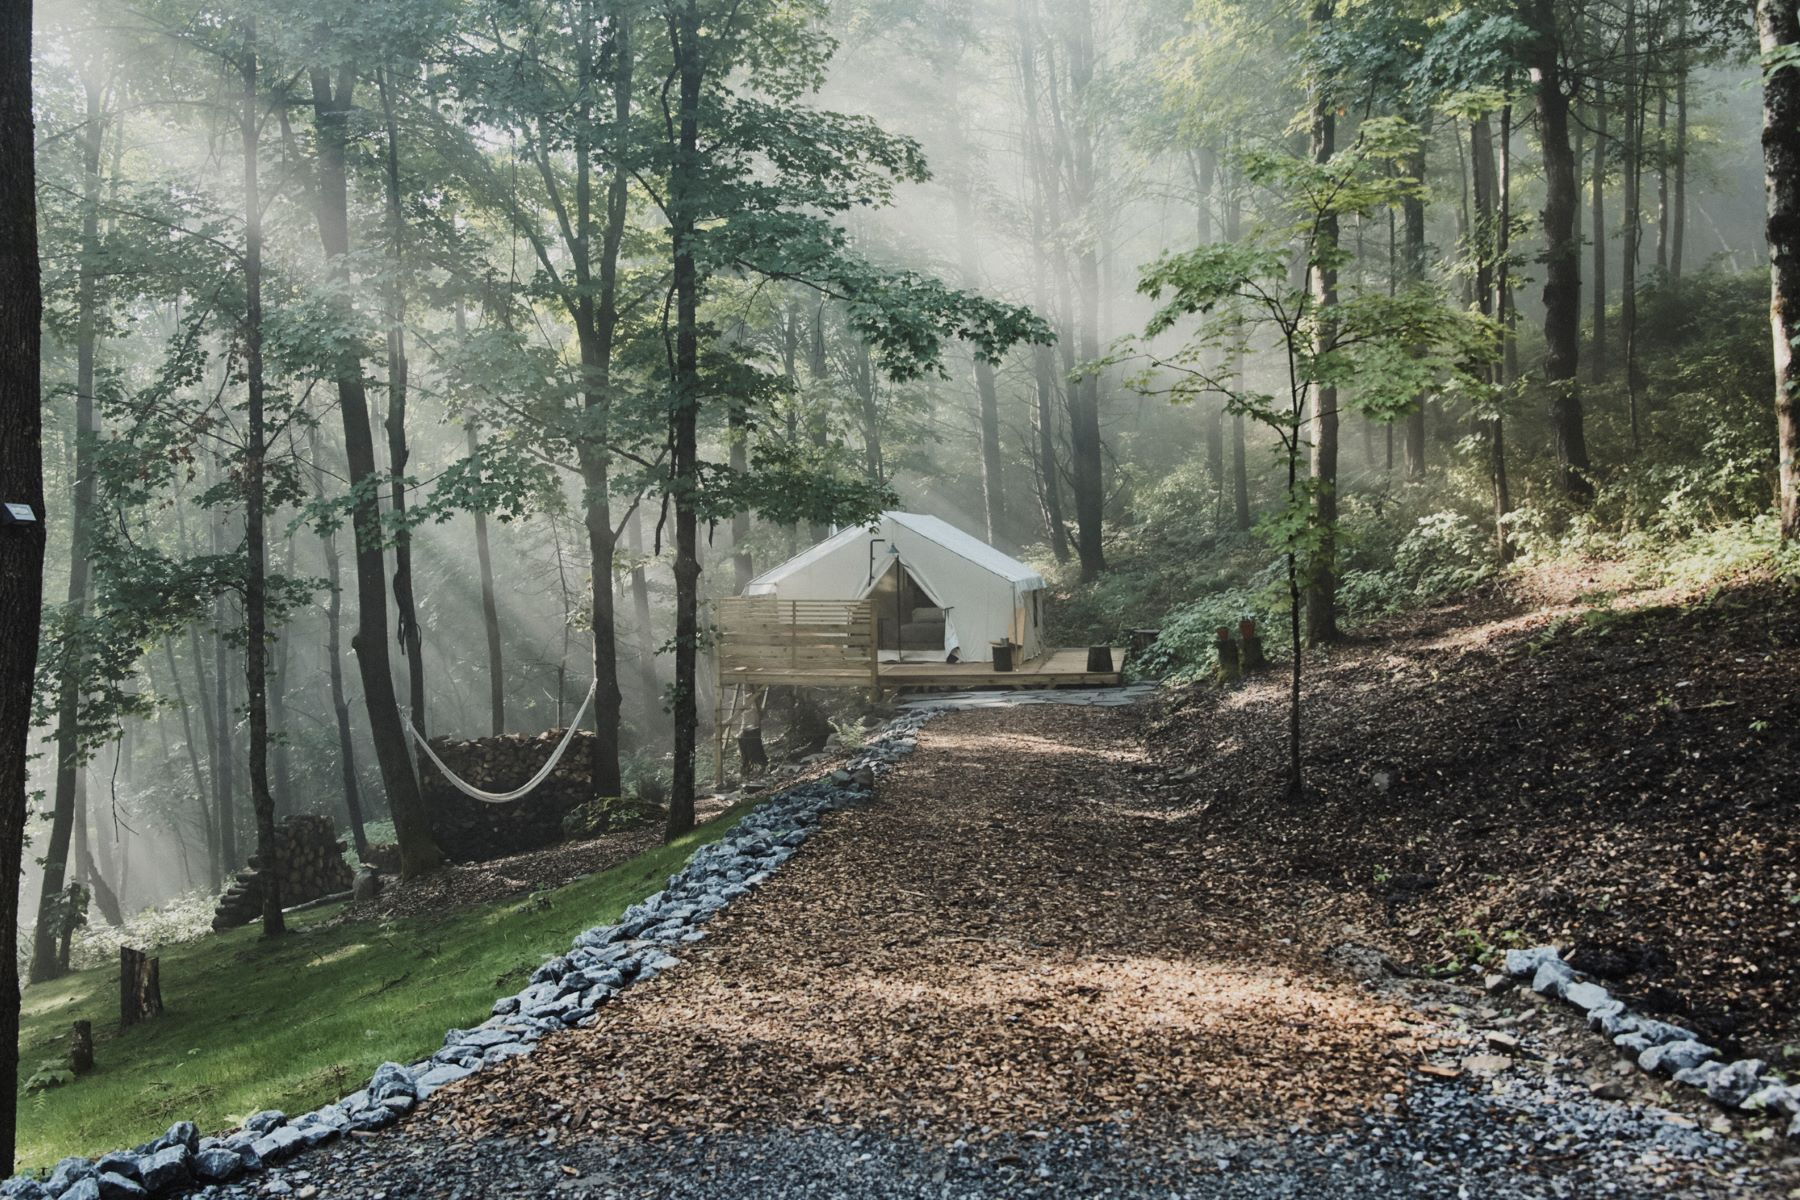 Single Family Homes for Active at Glamorous Camping on the Pantherkill Stream 420 W Fulton Road West Fulton, New York 12194 United States